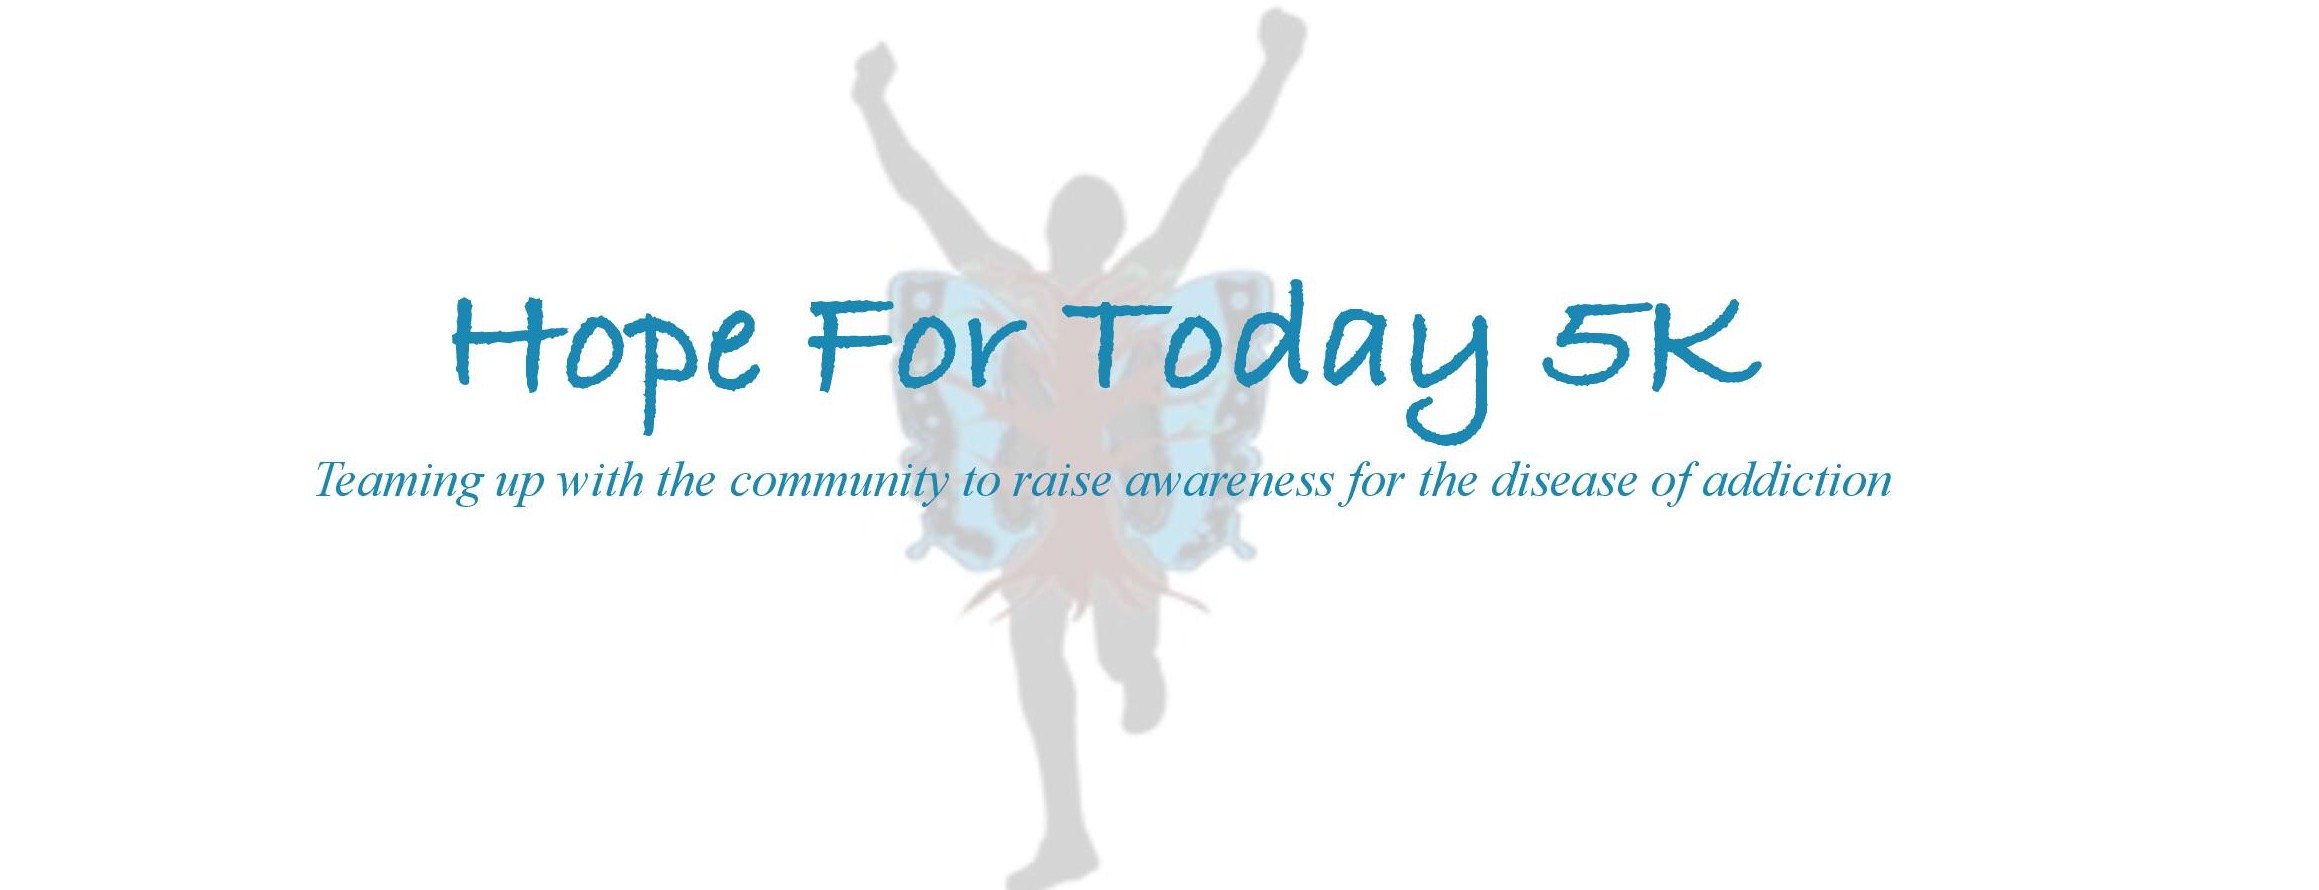 2nd-annual-hope-for-today-5k-sponsor